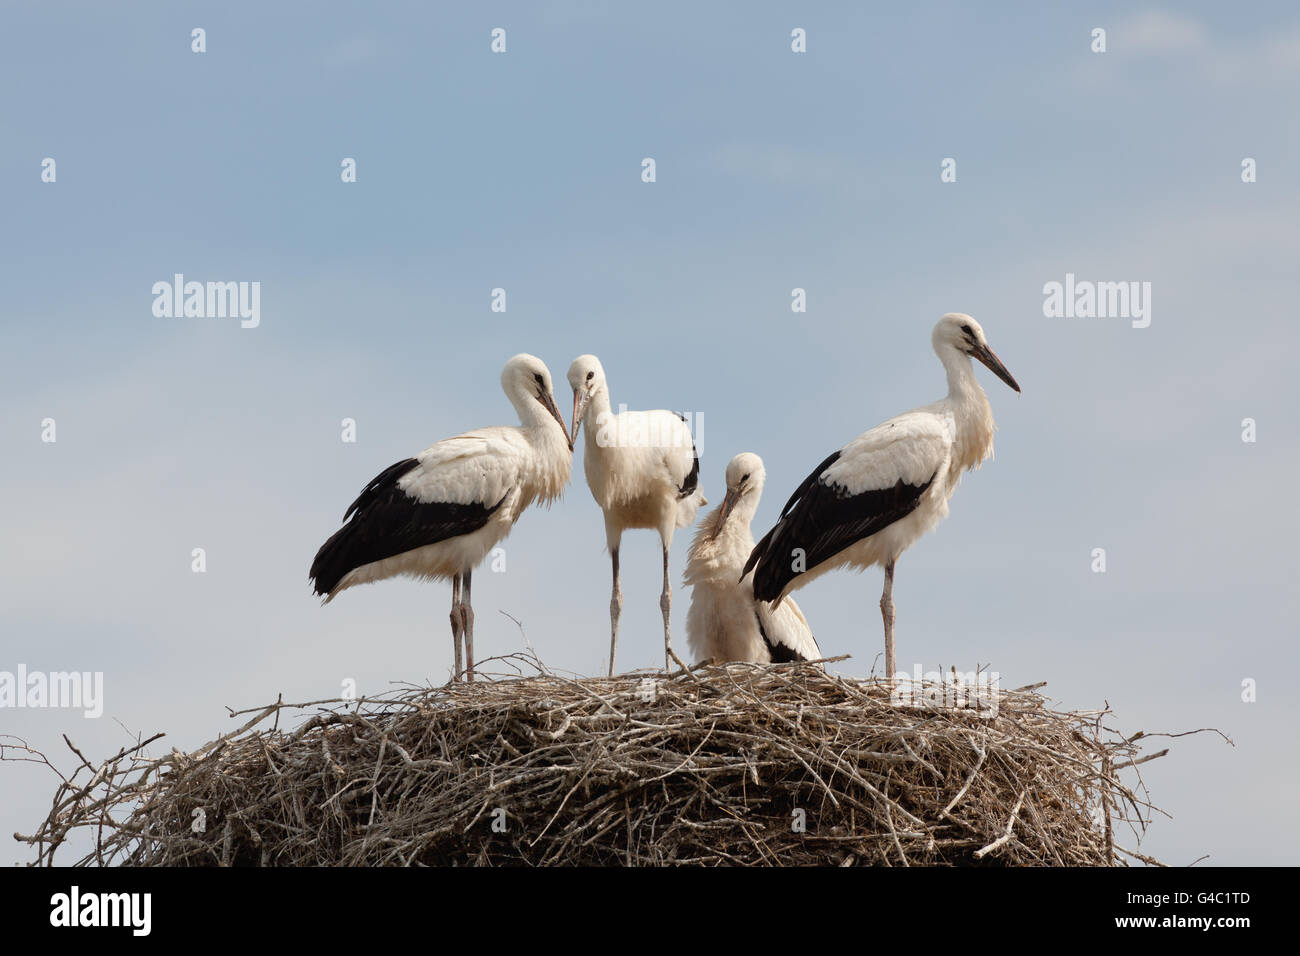 Young baby birds of a white stork in a nest against the blue sky - Stock Image